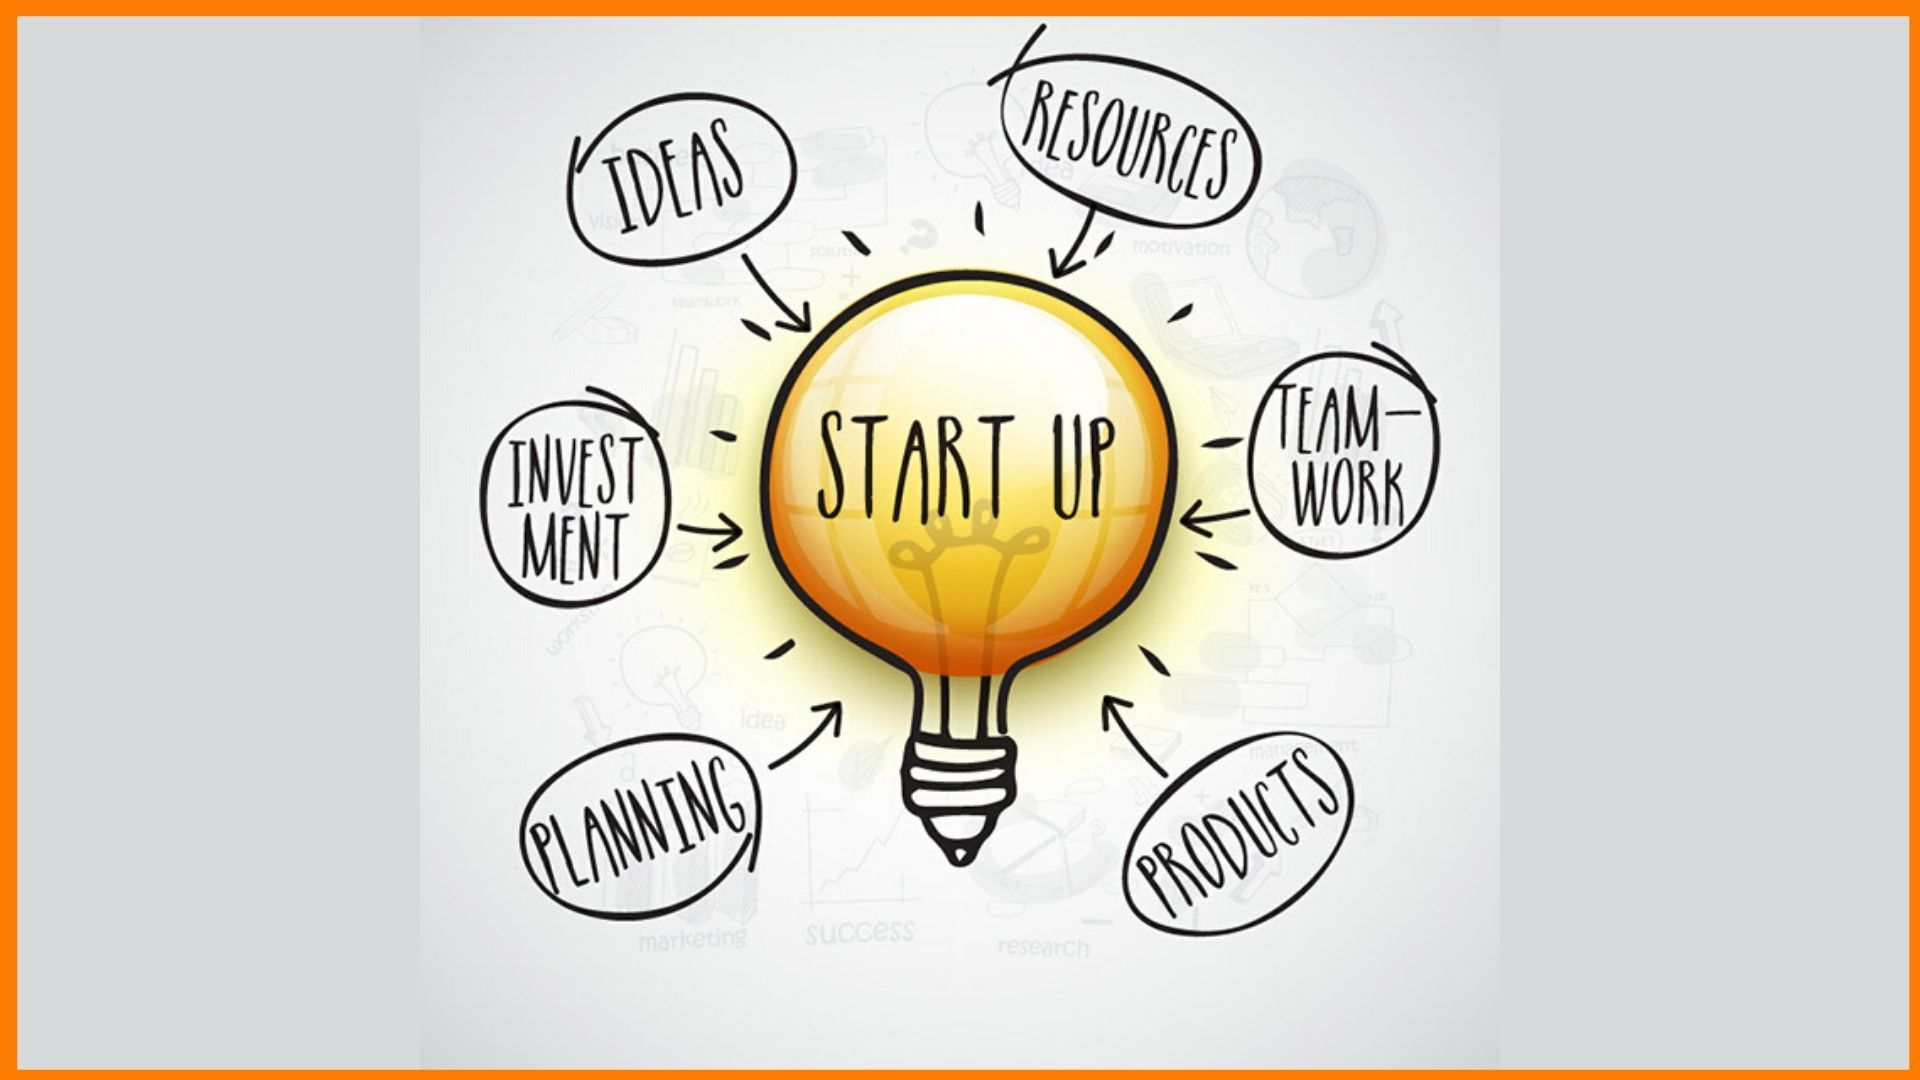 Elements of Successful Startup